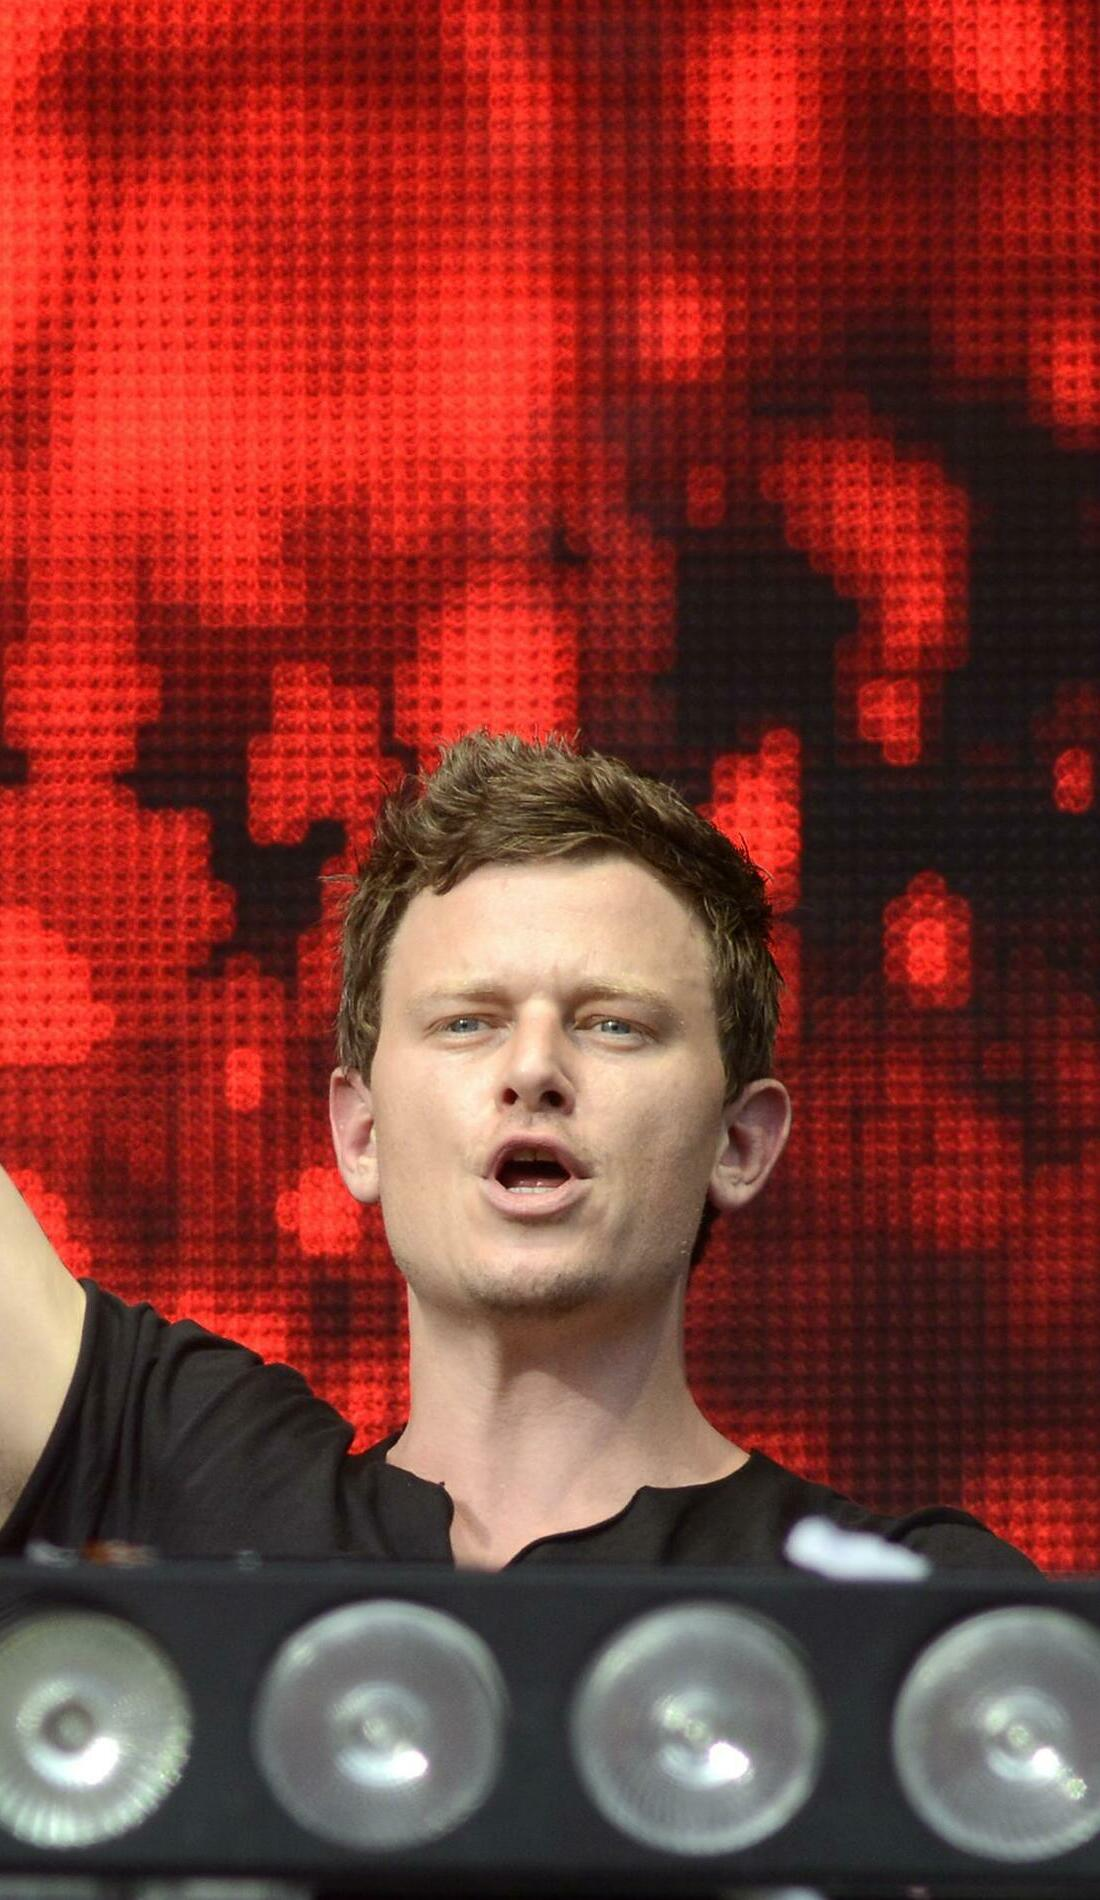 A Fedde Le Grand live event